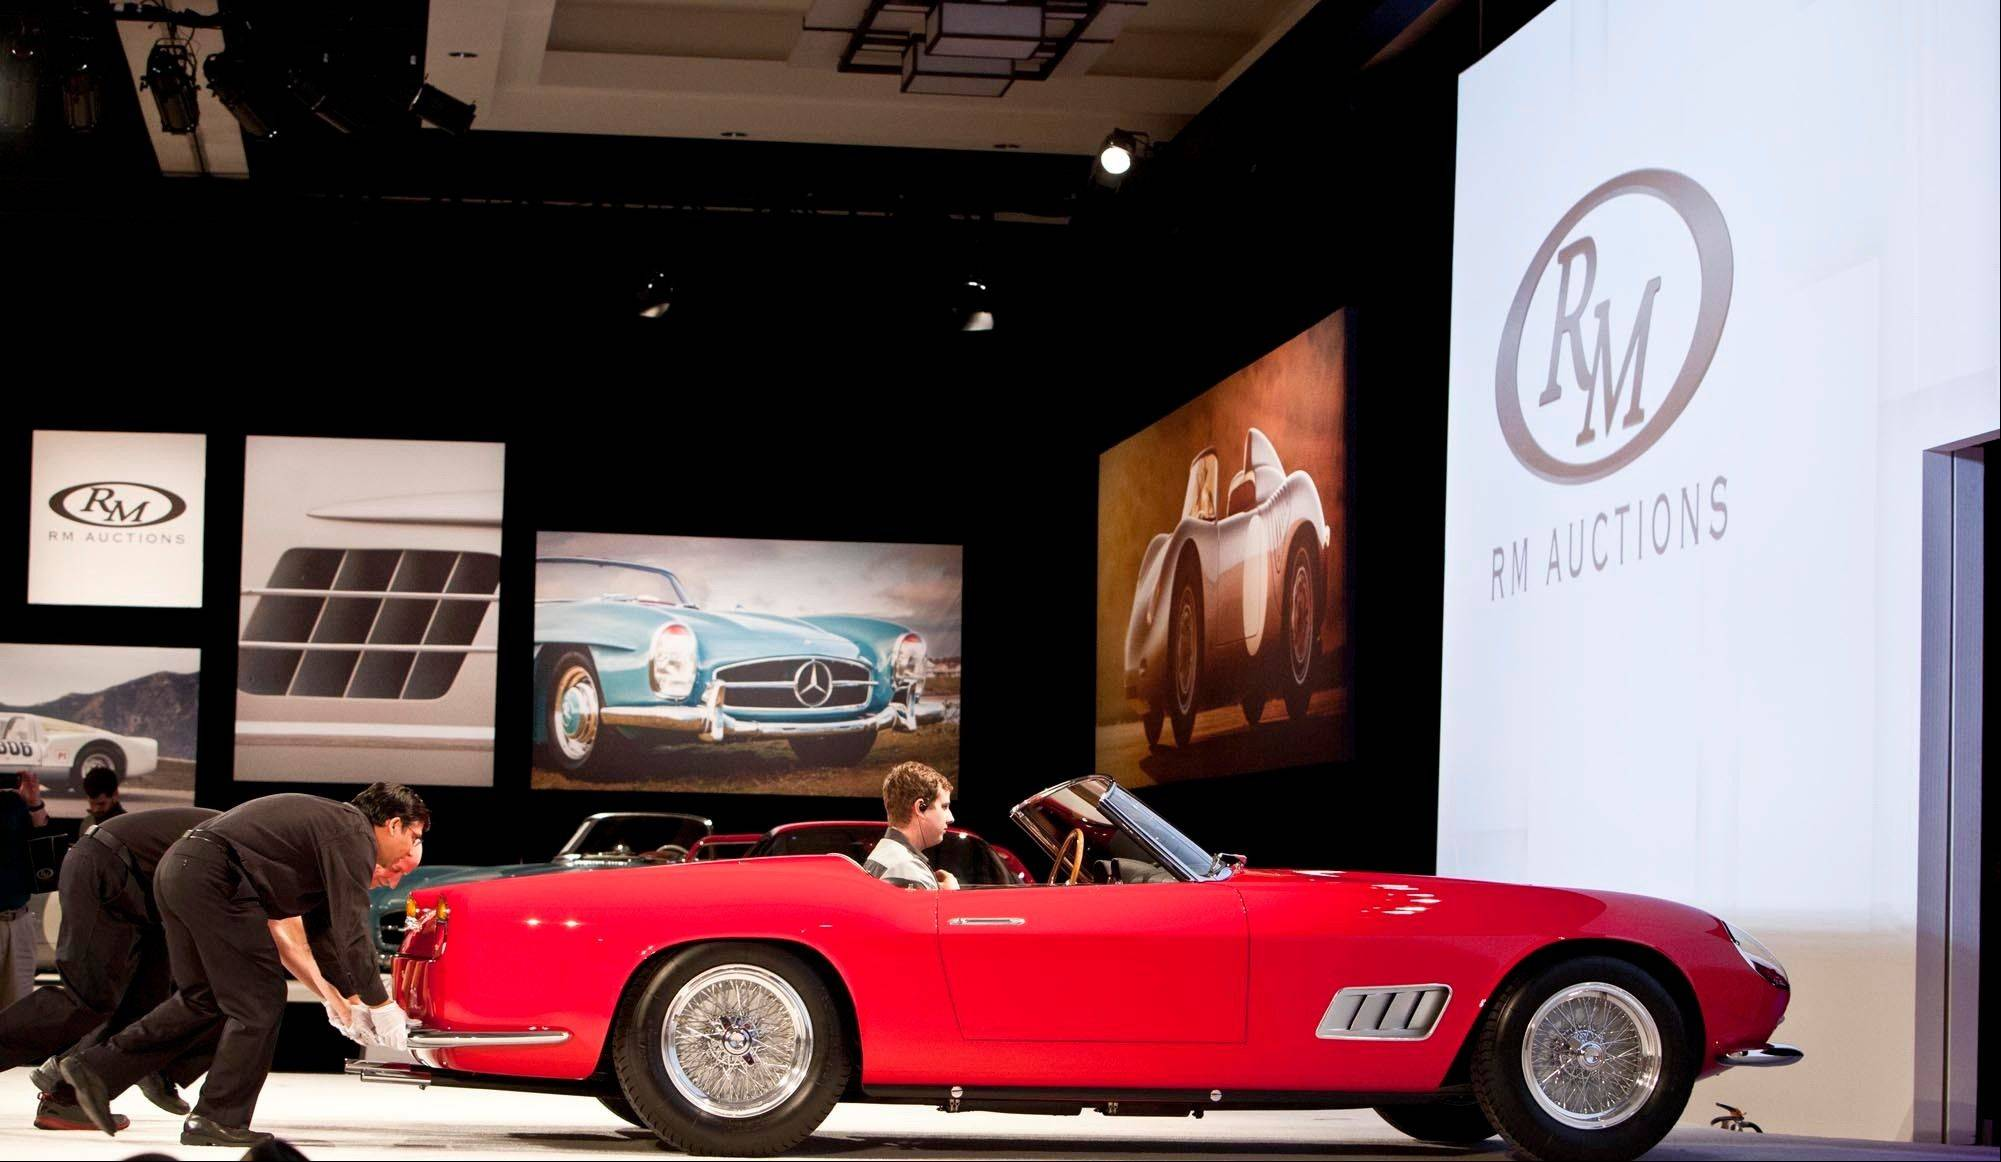 A 1958 Ferrari 250 GT Series 1 Cabriolet sold for $8.8 million Jan. 17 at the RM Auction at the Arizona Biltmore in Phoenix.